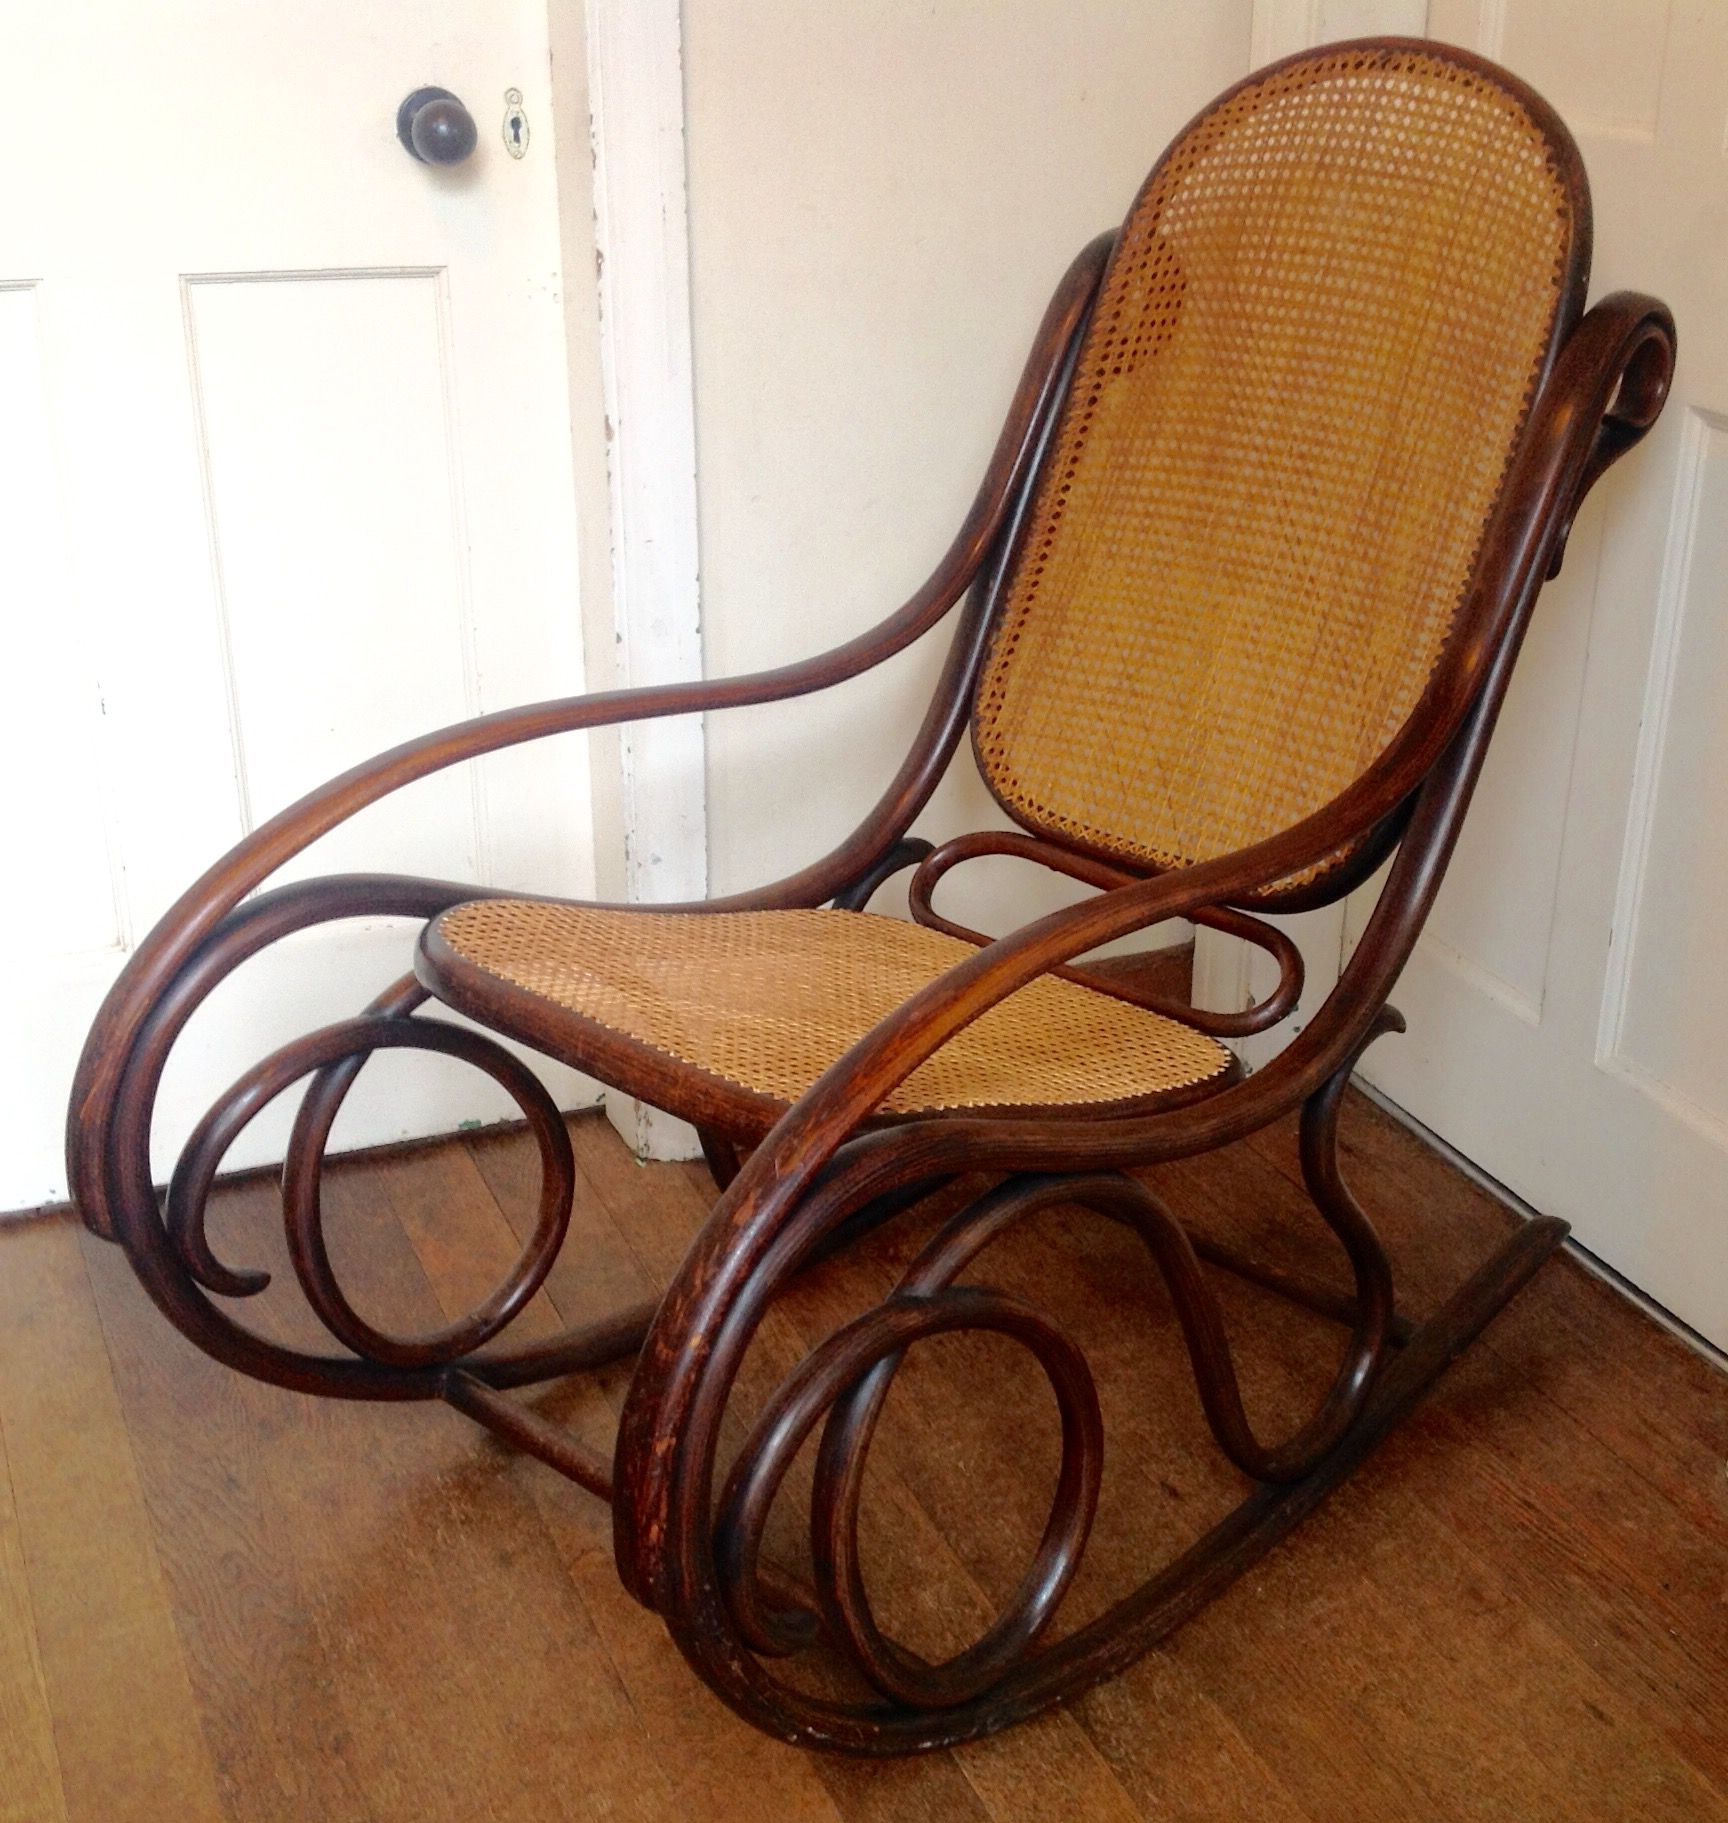 Amazing Rocking Chairs An Amazing Thonet Bentwood Rocking Chair No 6 In The